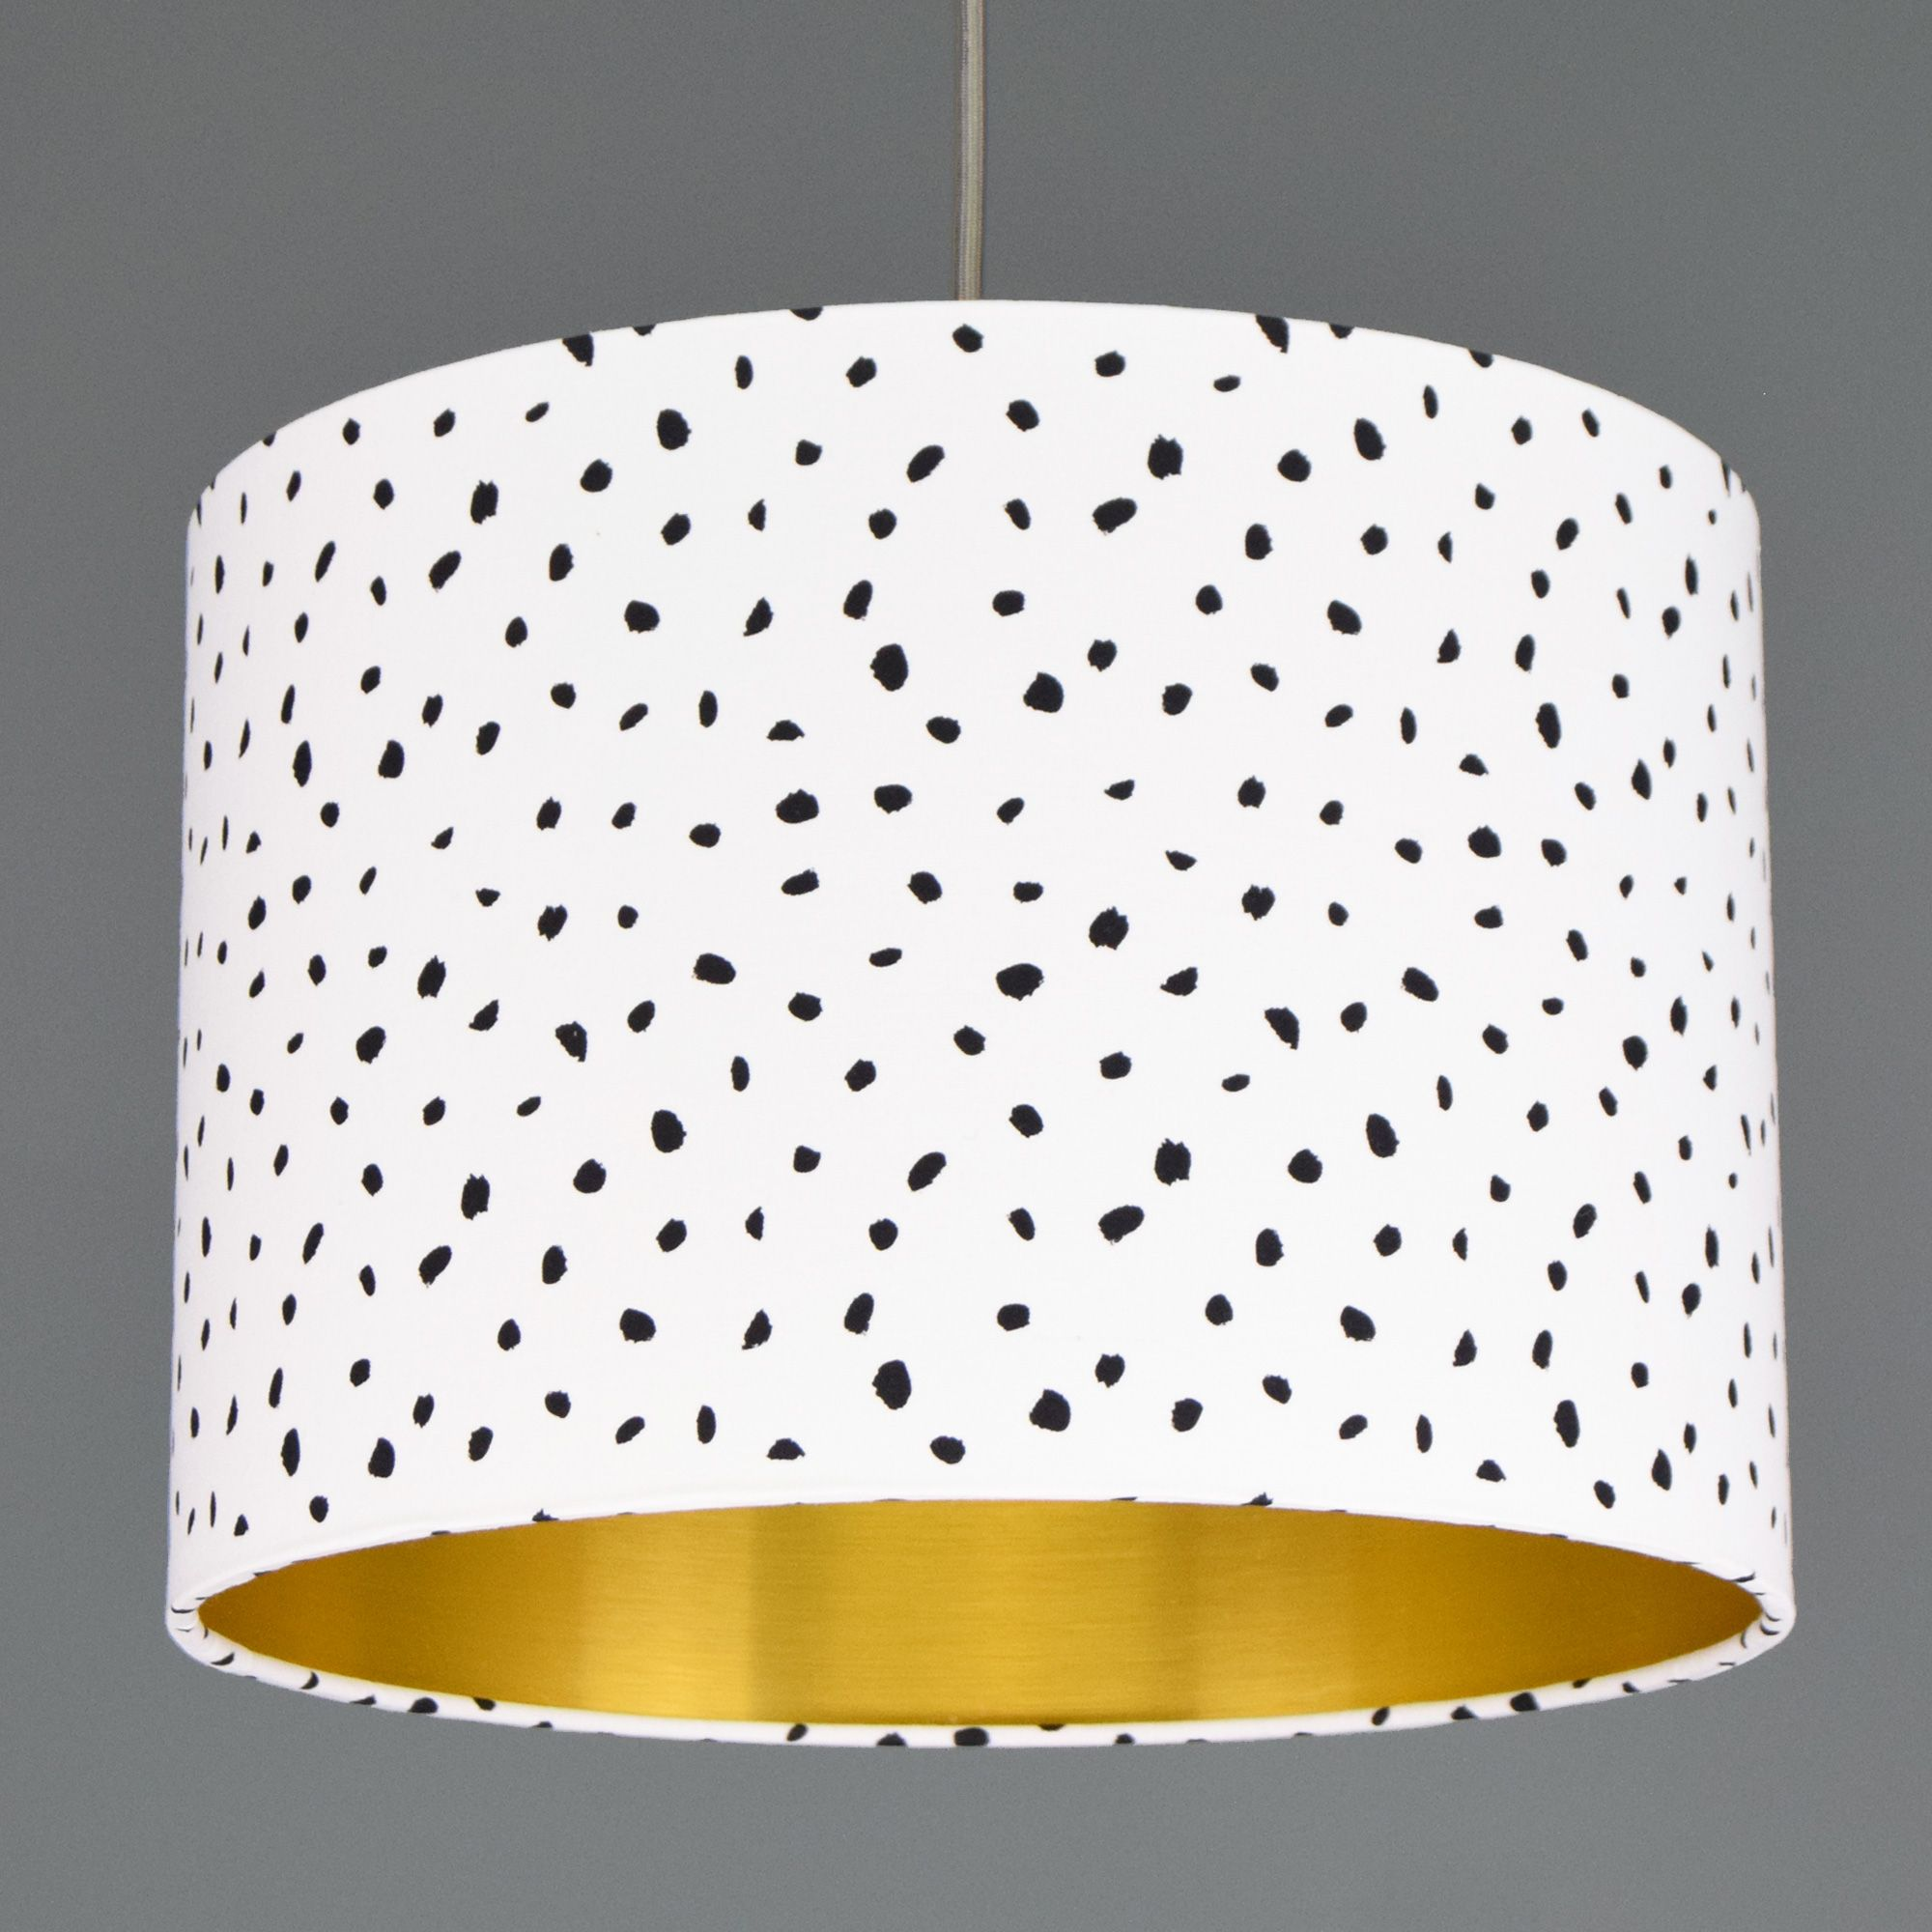 Dalmatian Spot Lampshade With Choice Of Metallic Lining in